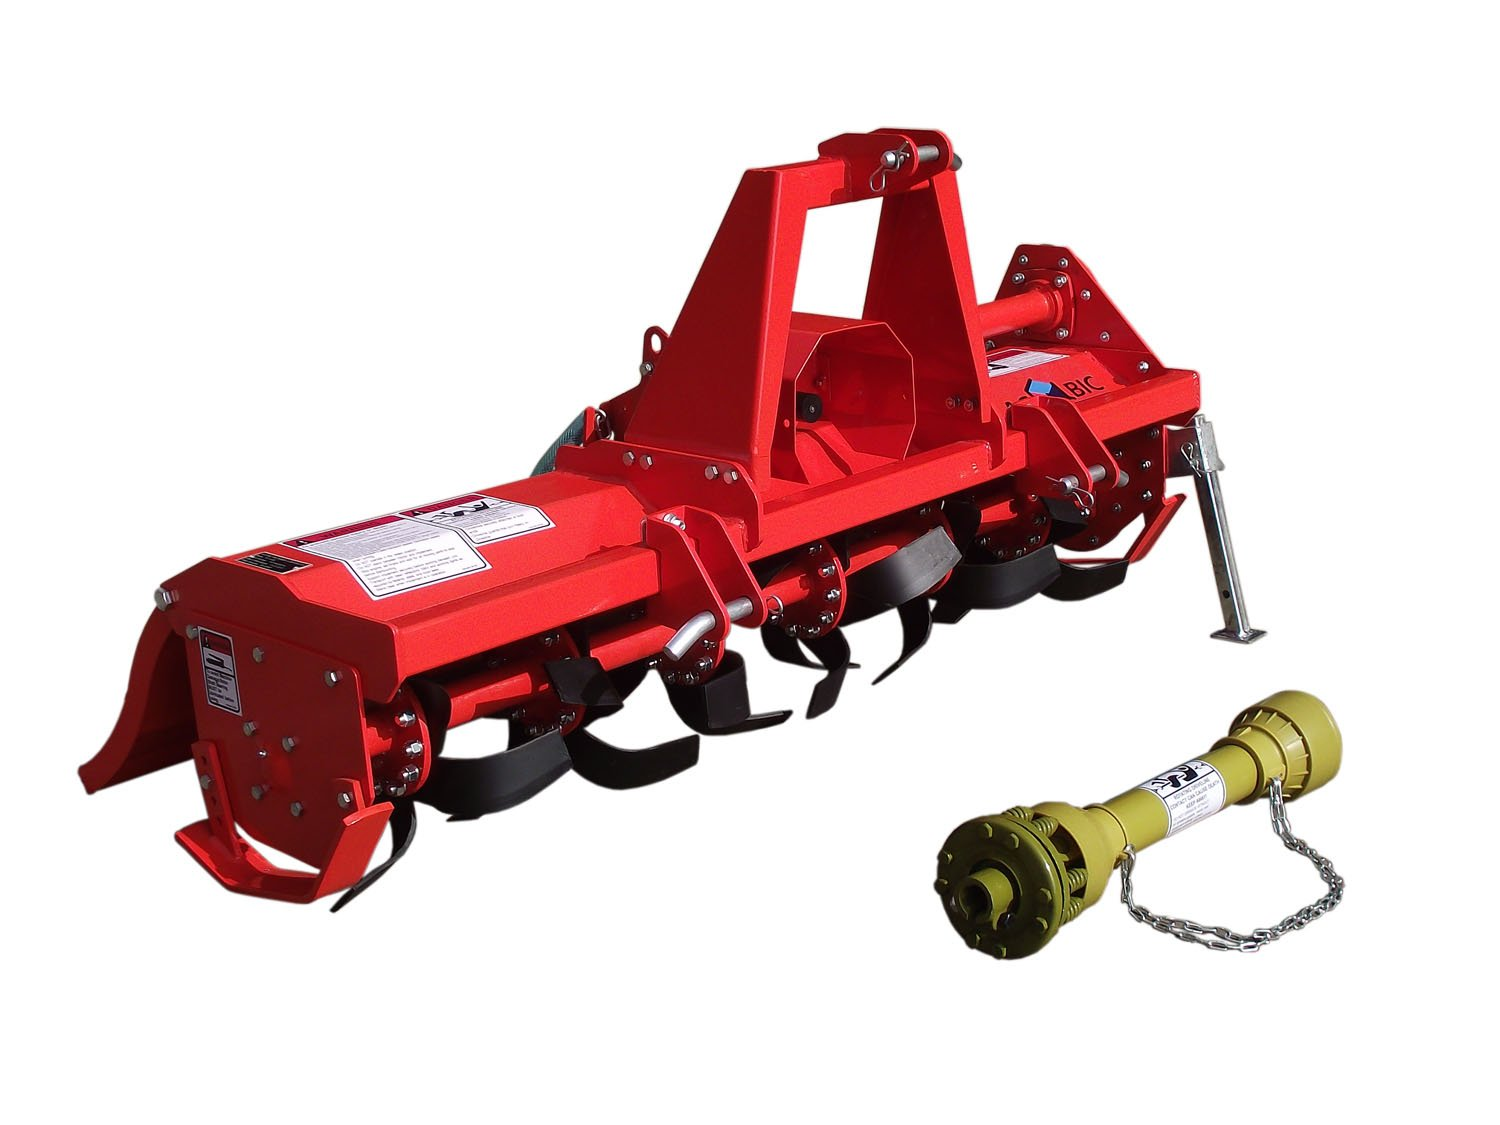 3pt Rotary Tiller Accubic#rta56, Cat1, 56in.working Width, Gear Drive, 36 Blades, Offset, Slip Clutch PTO by ACCUBIC (Image #4)